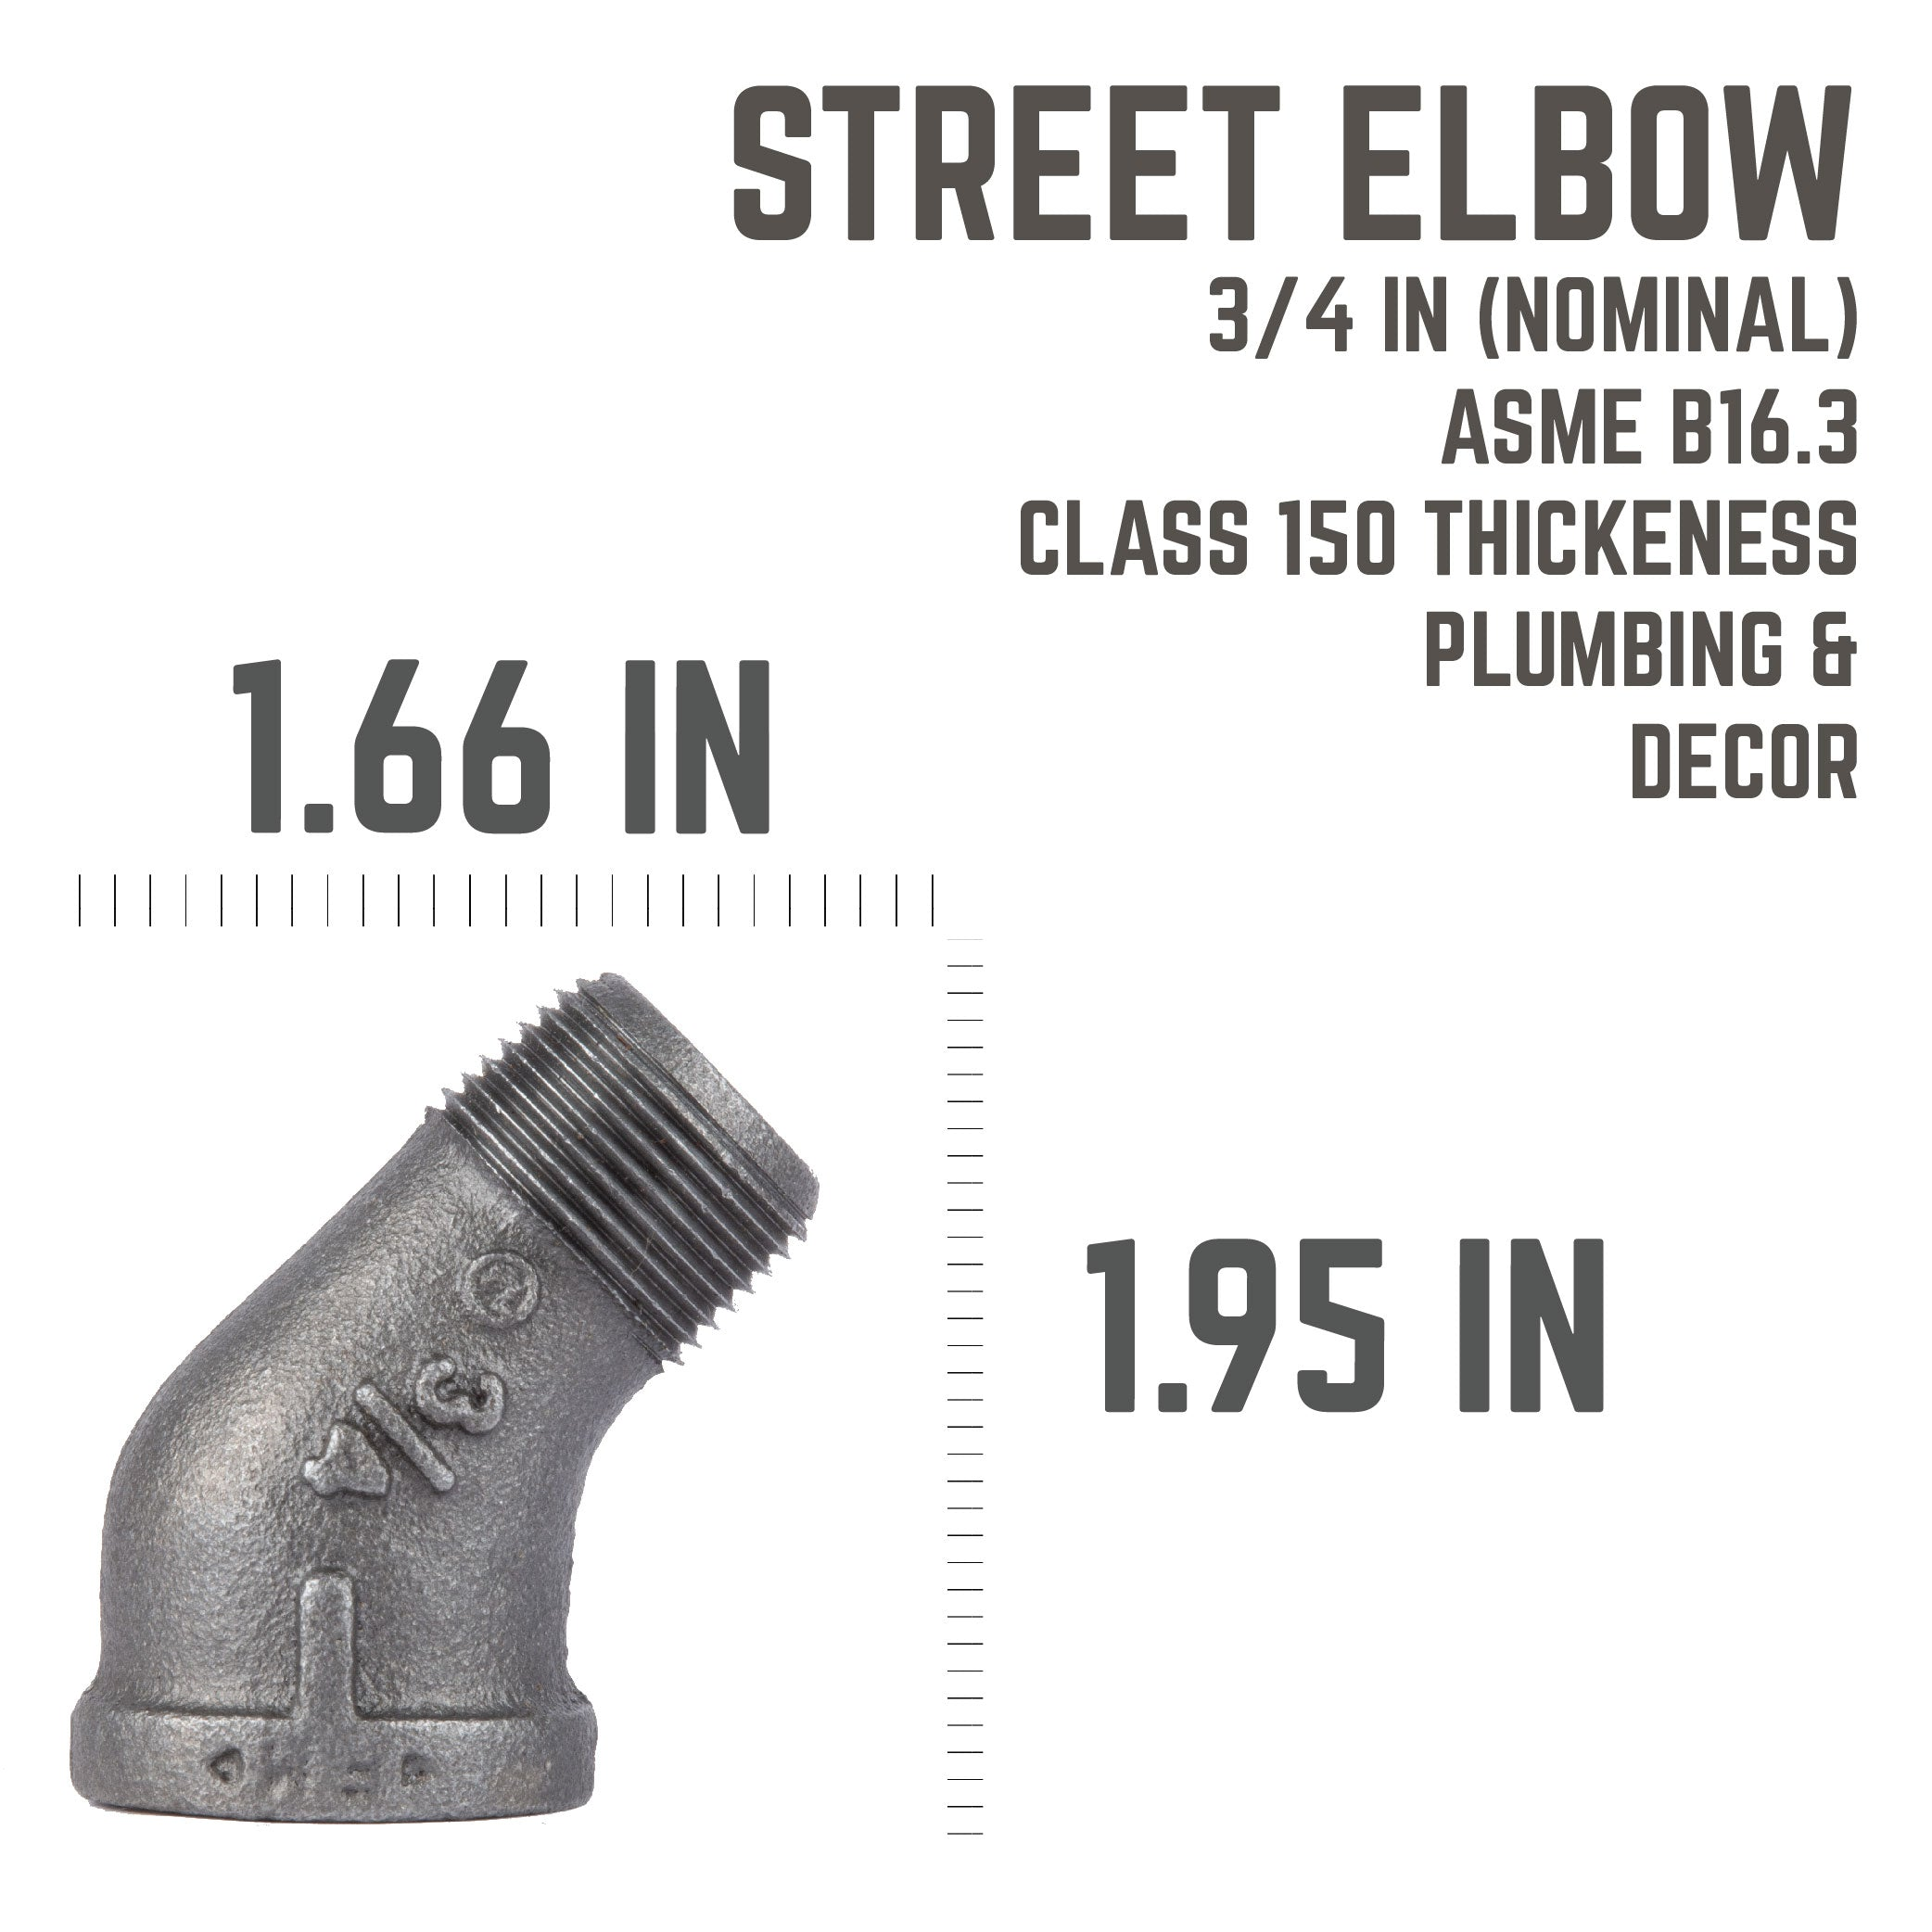 3/4 In 45 Street Elbow - Pipe Decor